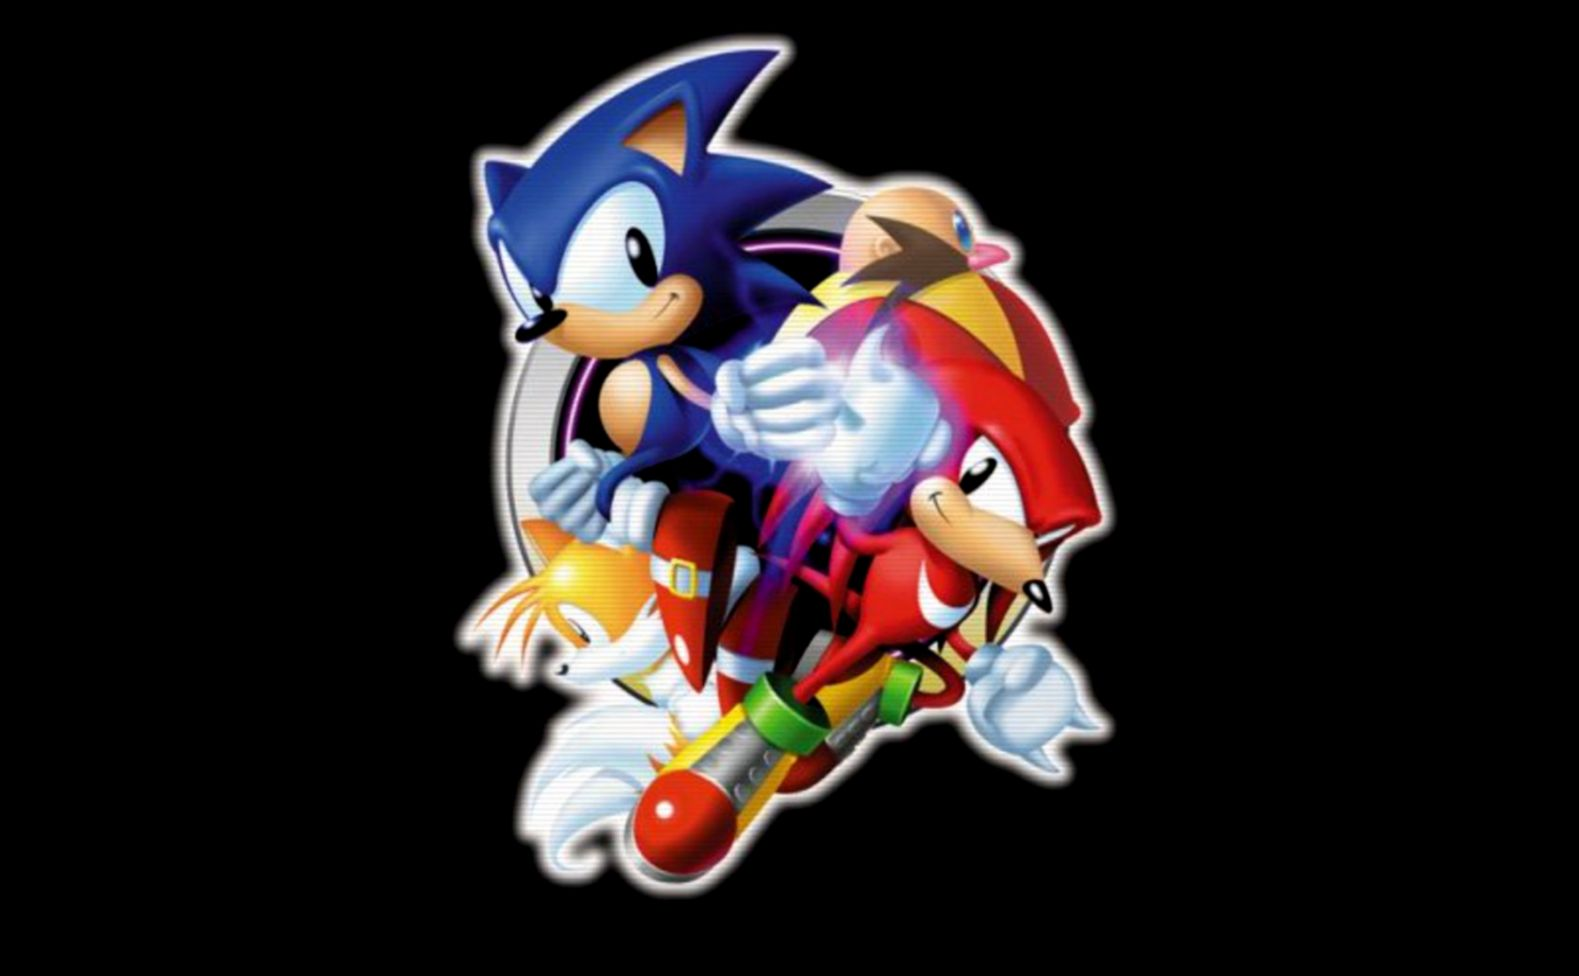 Sonic Hedgehog Wallpapers Hd High Definitions Wallpapers